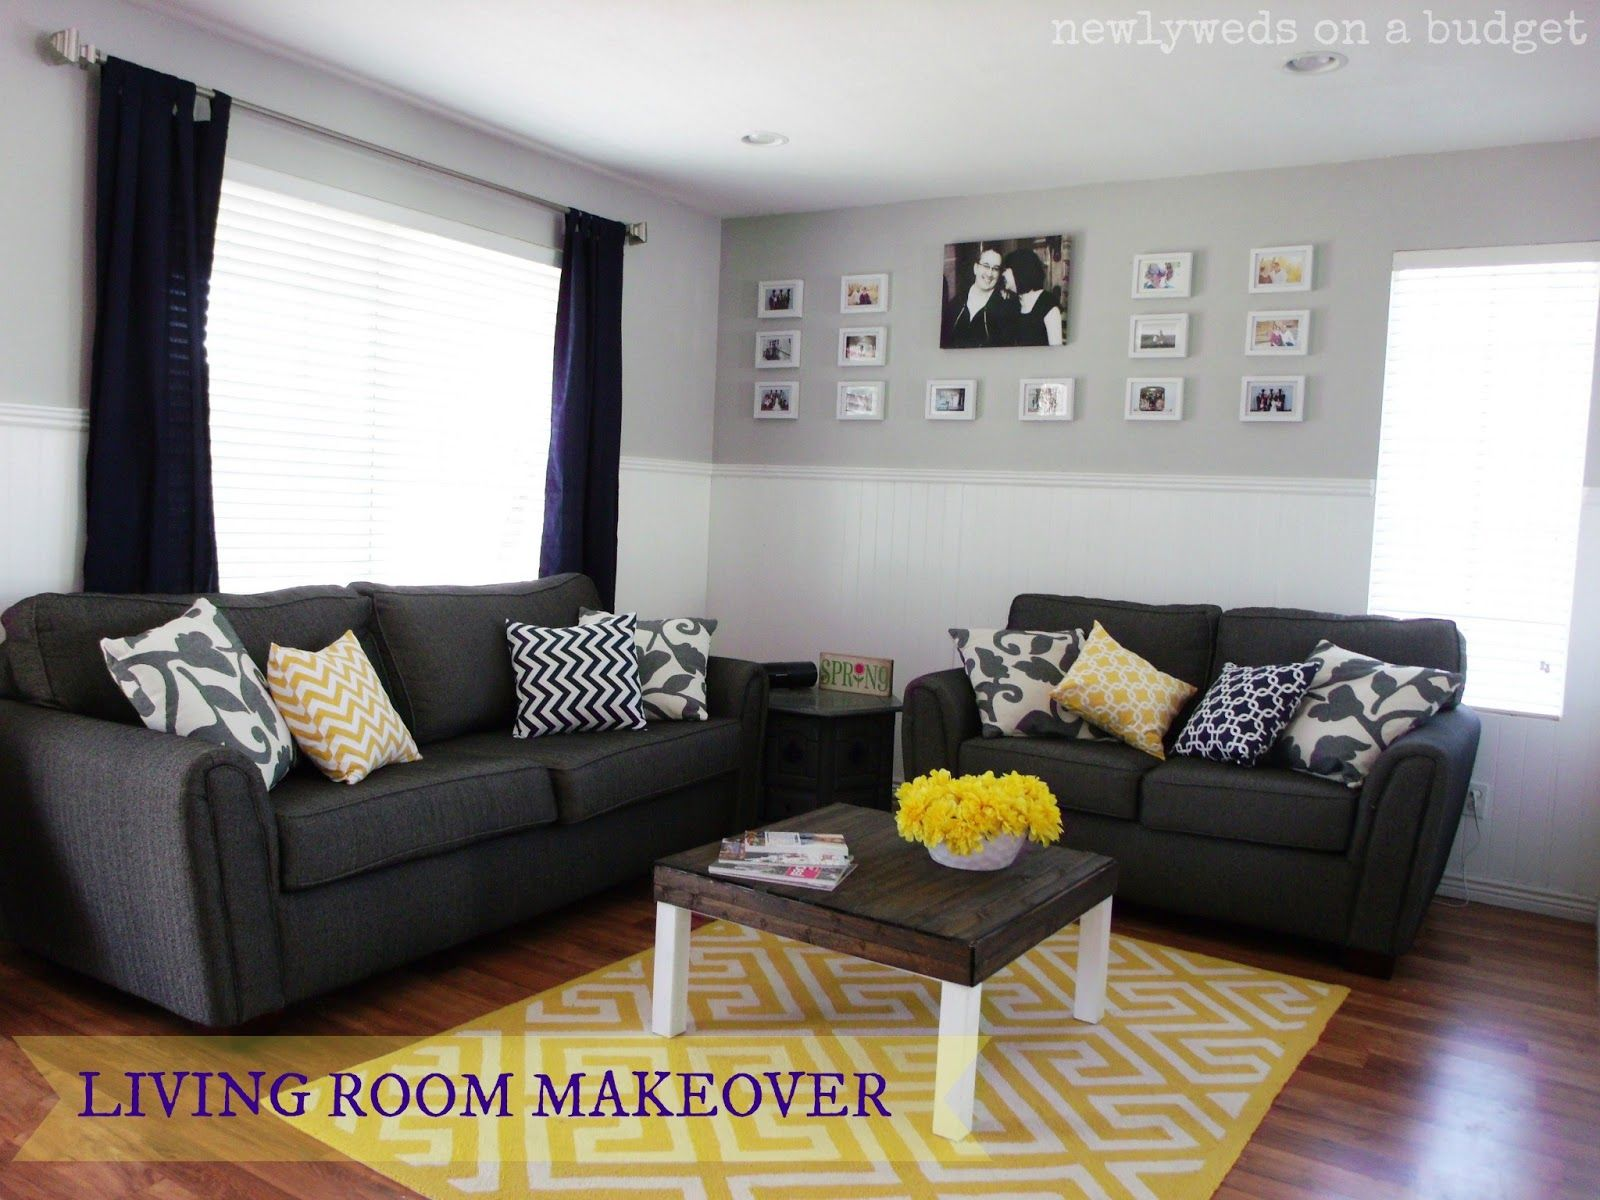 Newlyweds On A Budget Living Room Reveal I Love The Dark Couches